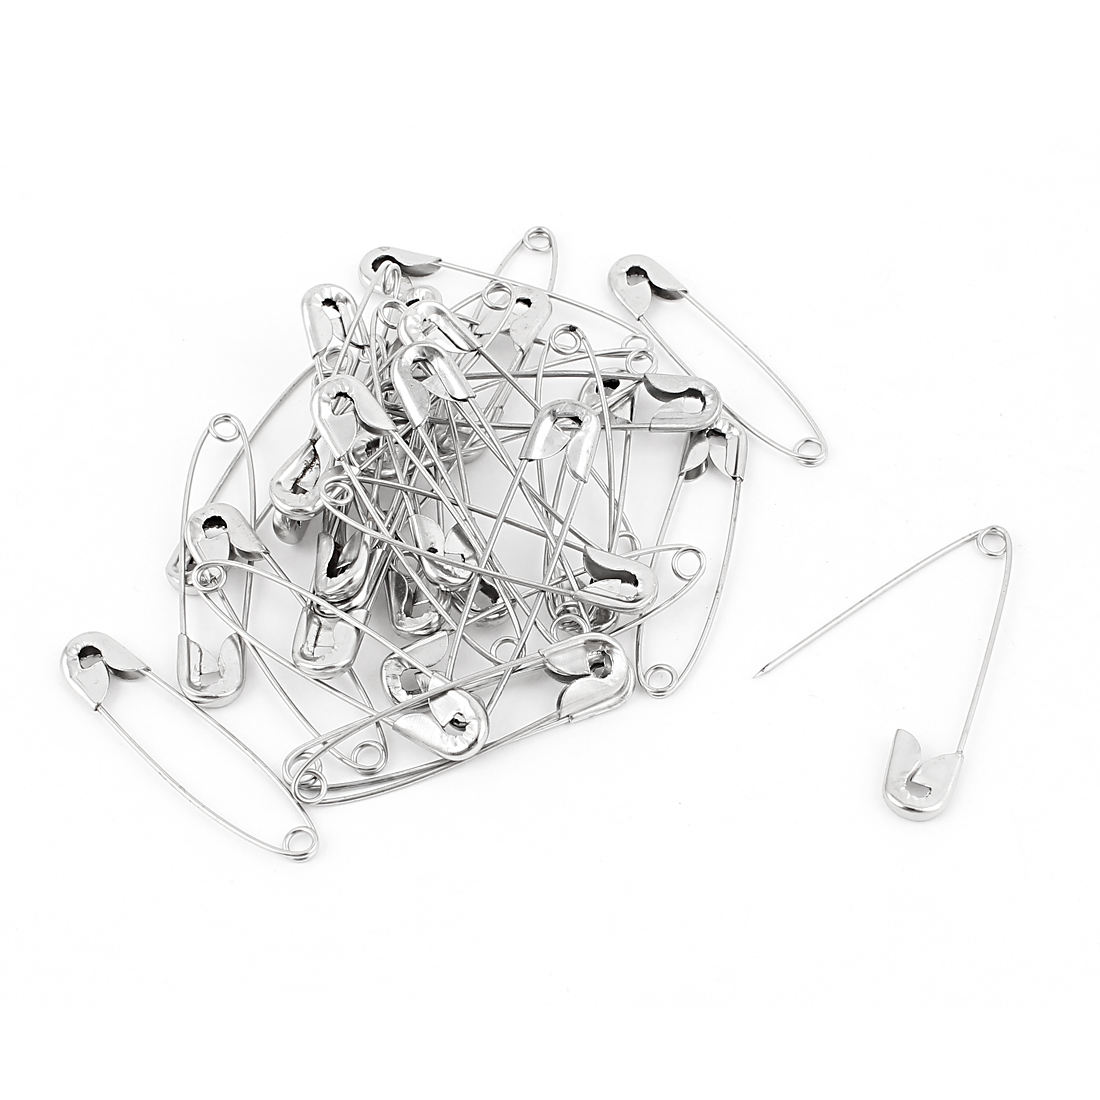 33 Pcs Metal Clothing Trimming Fastening Safety Pins 45mm x 10mm Silver Tone